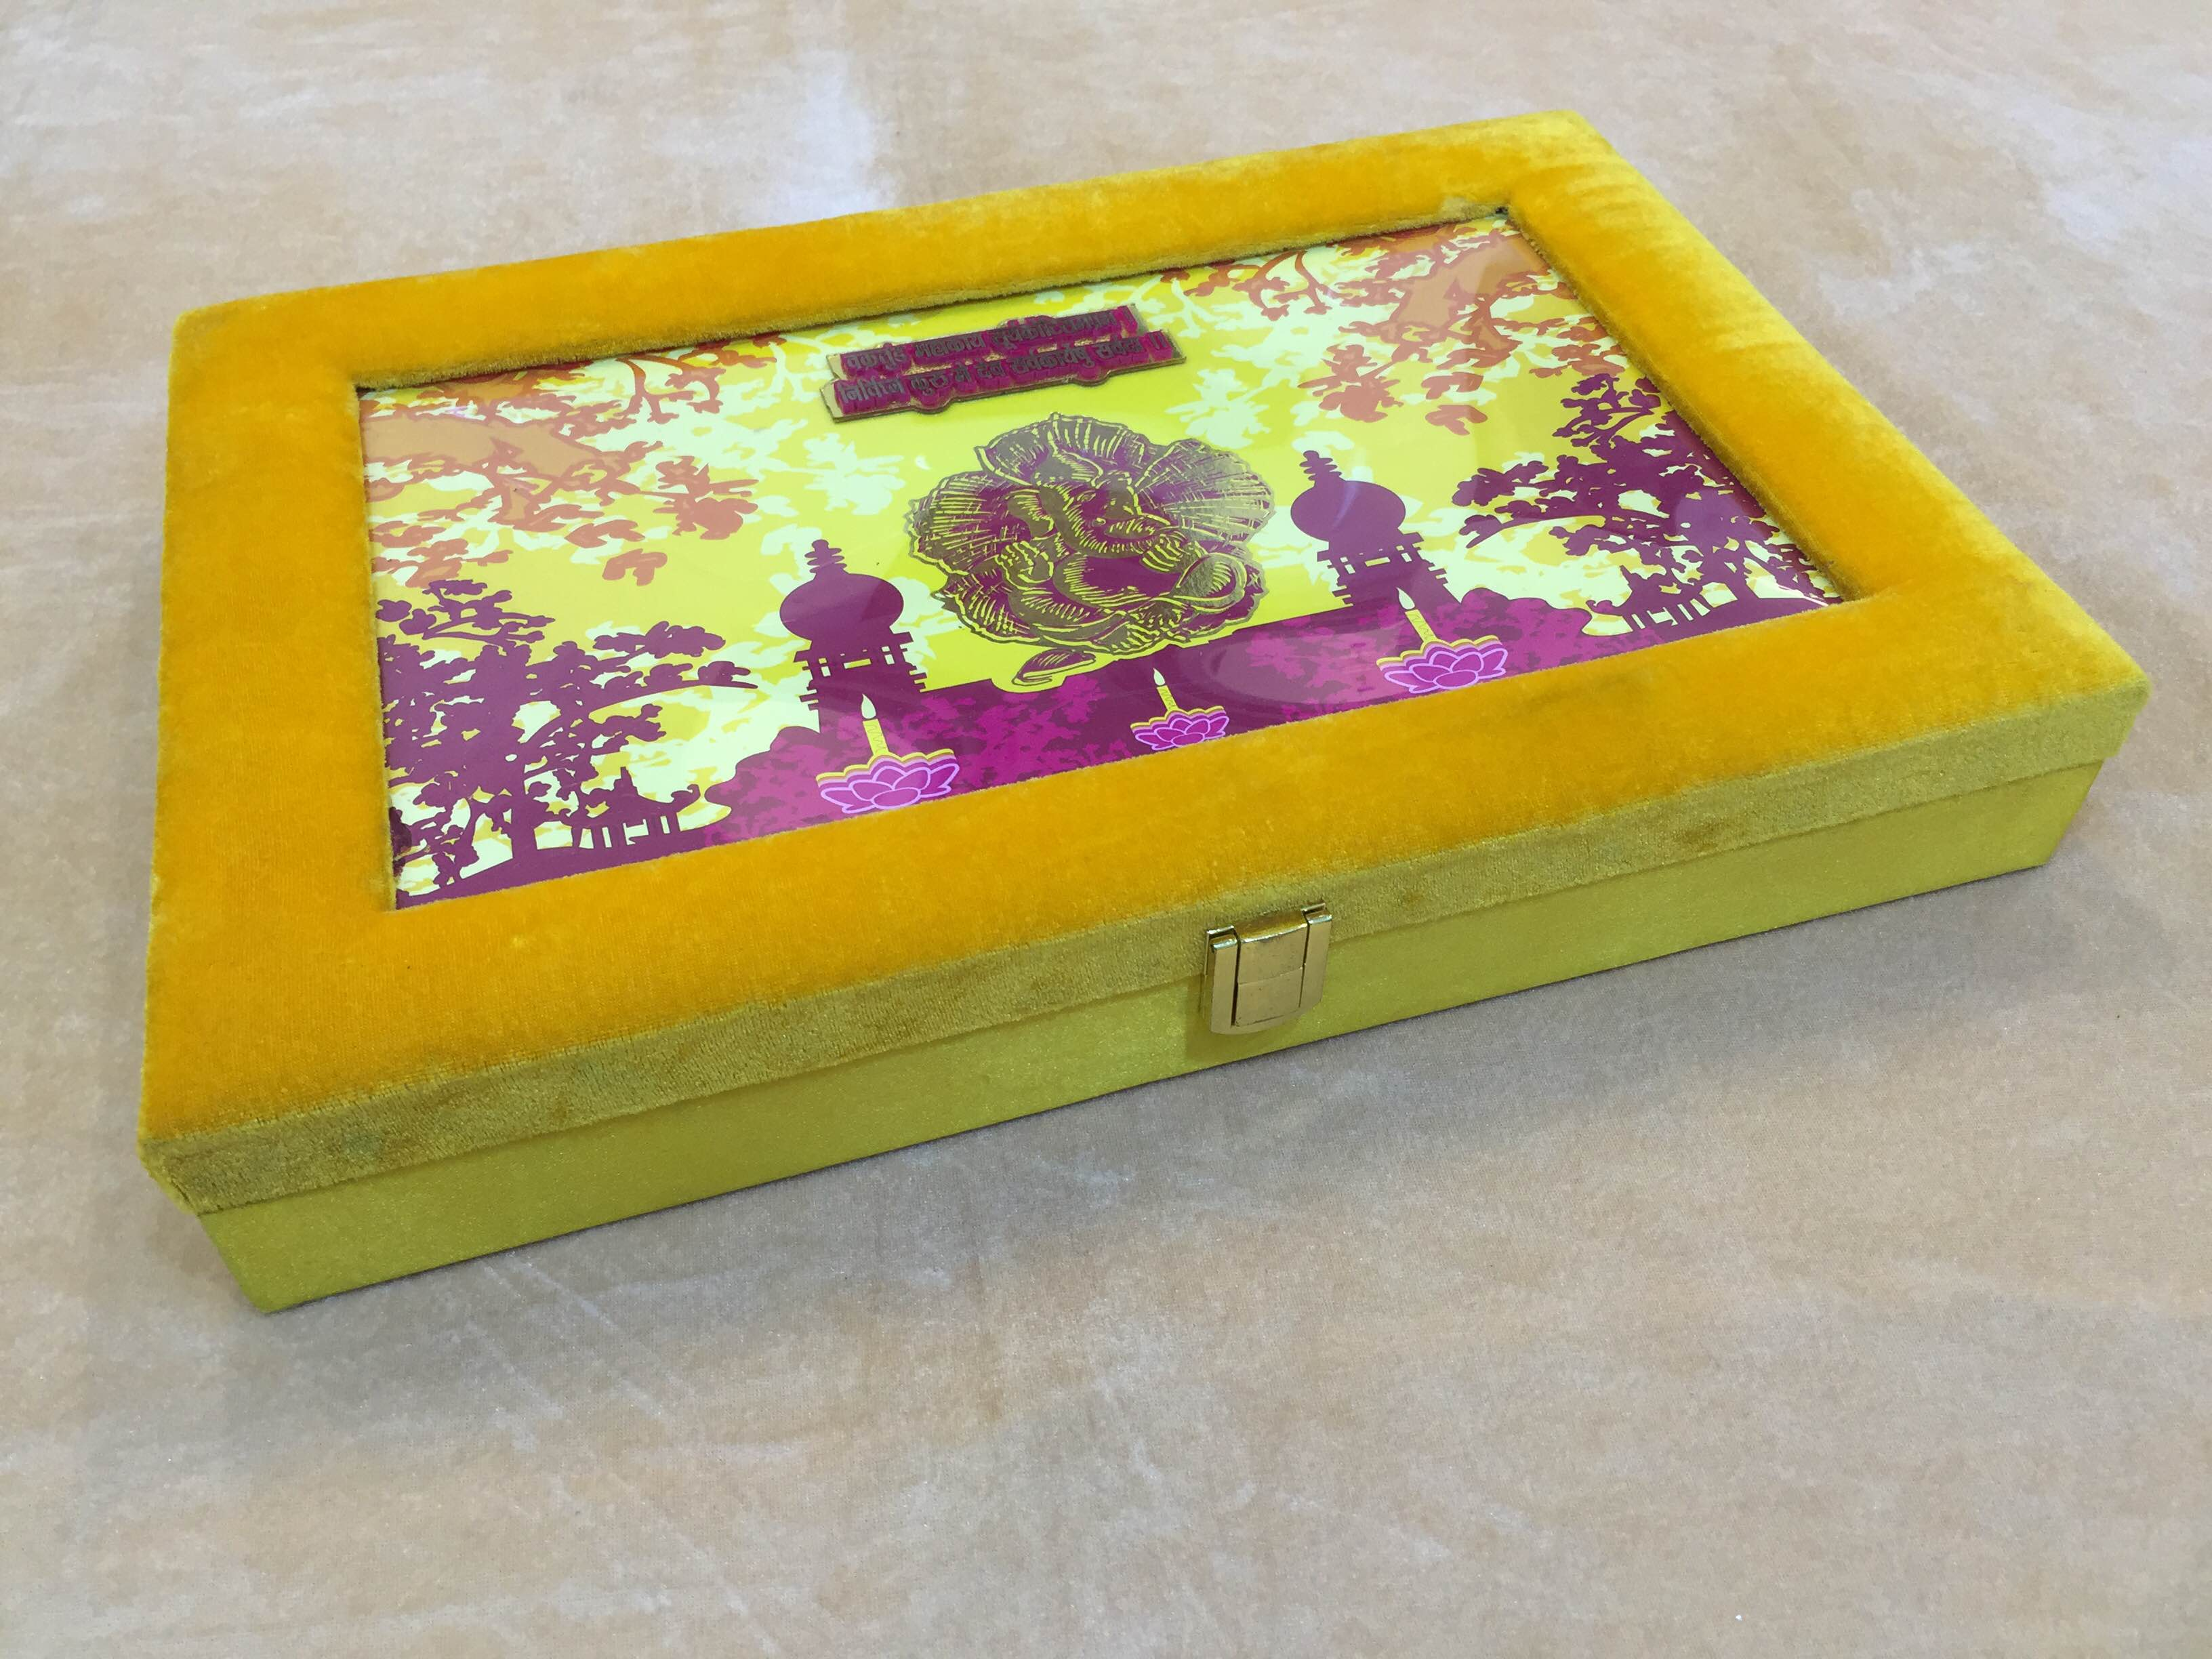 Decorative Dry Fruit Box   We are leading manufacturer, supplier and wholesaler of Decorative Dry Fruit Box in Delhi